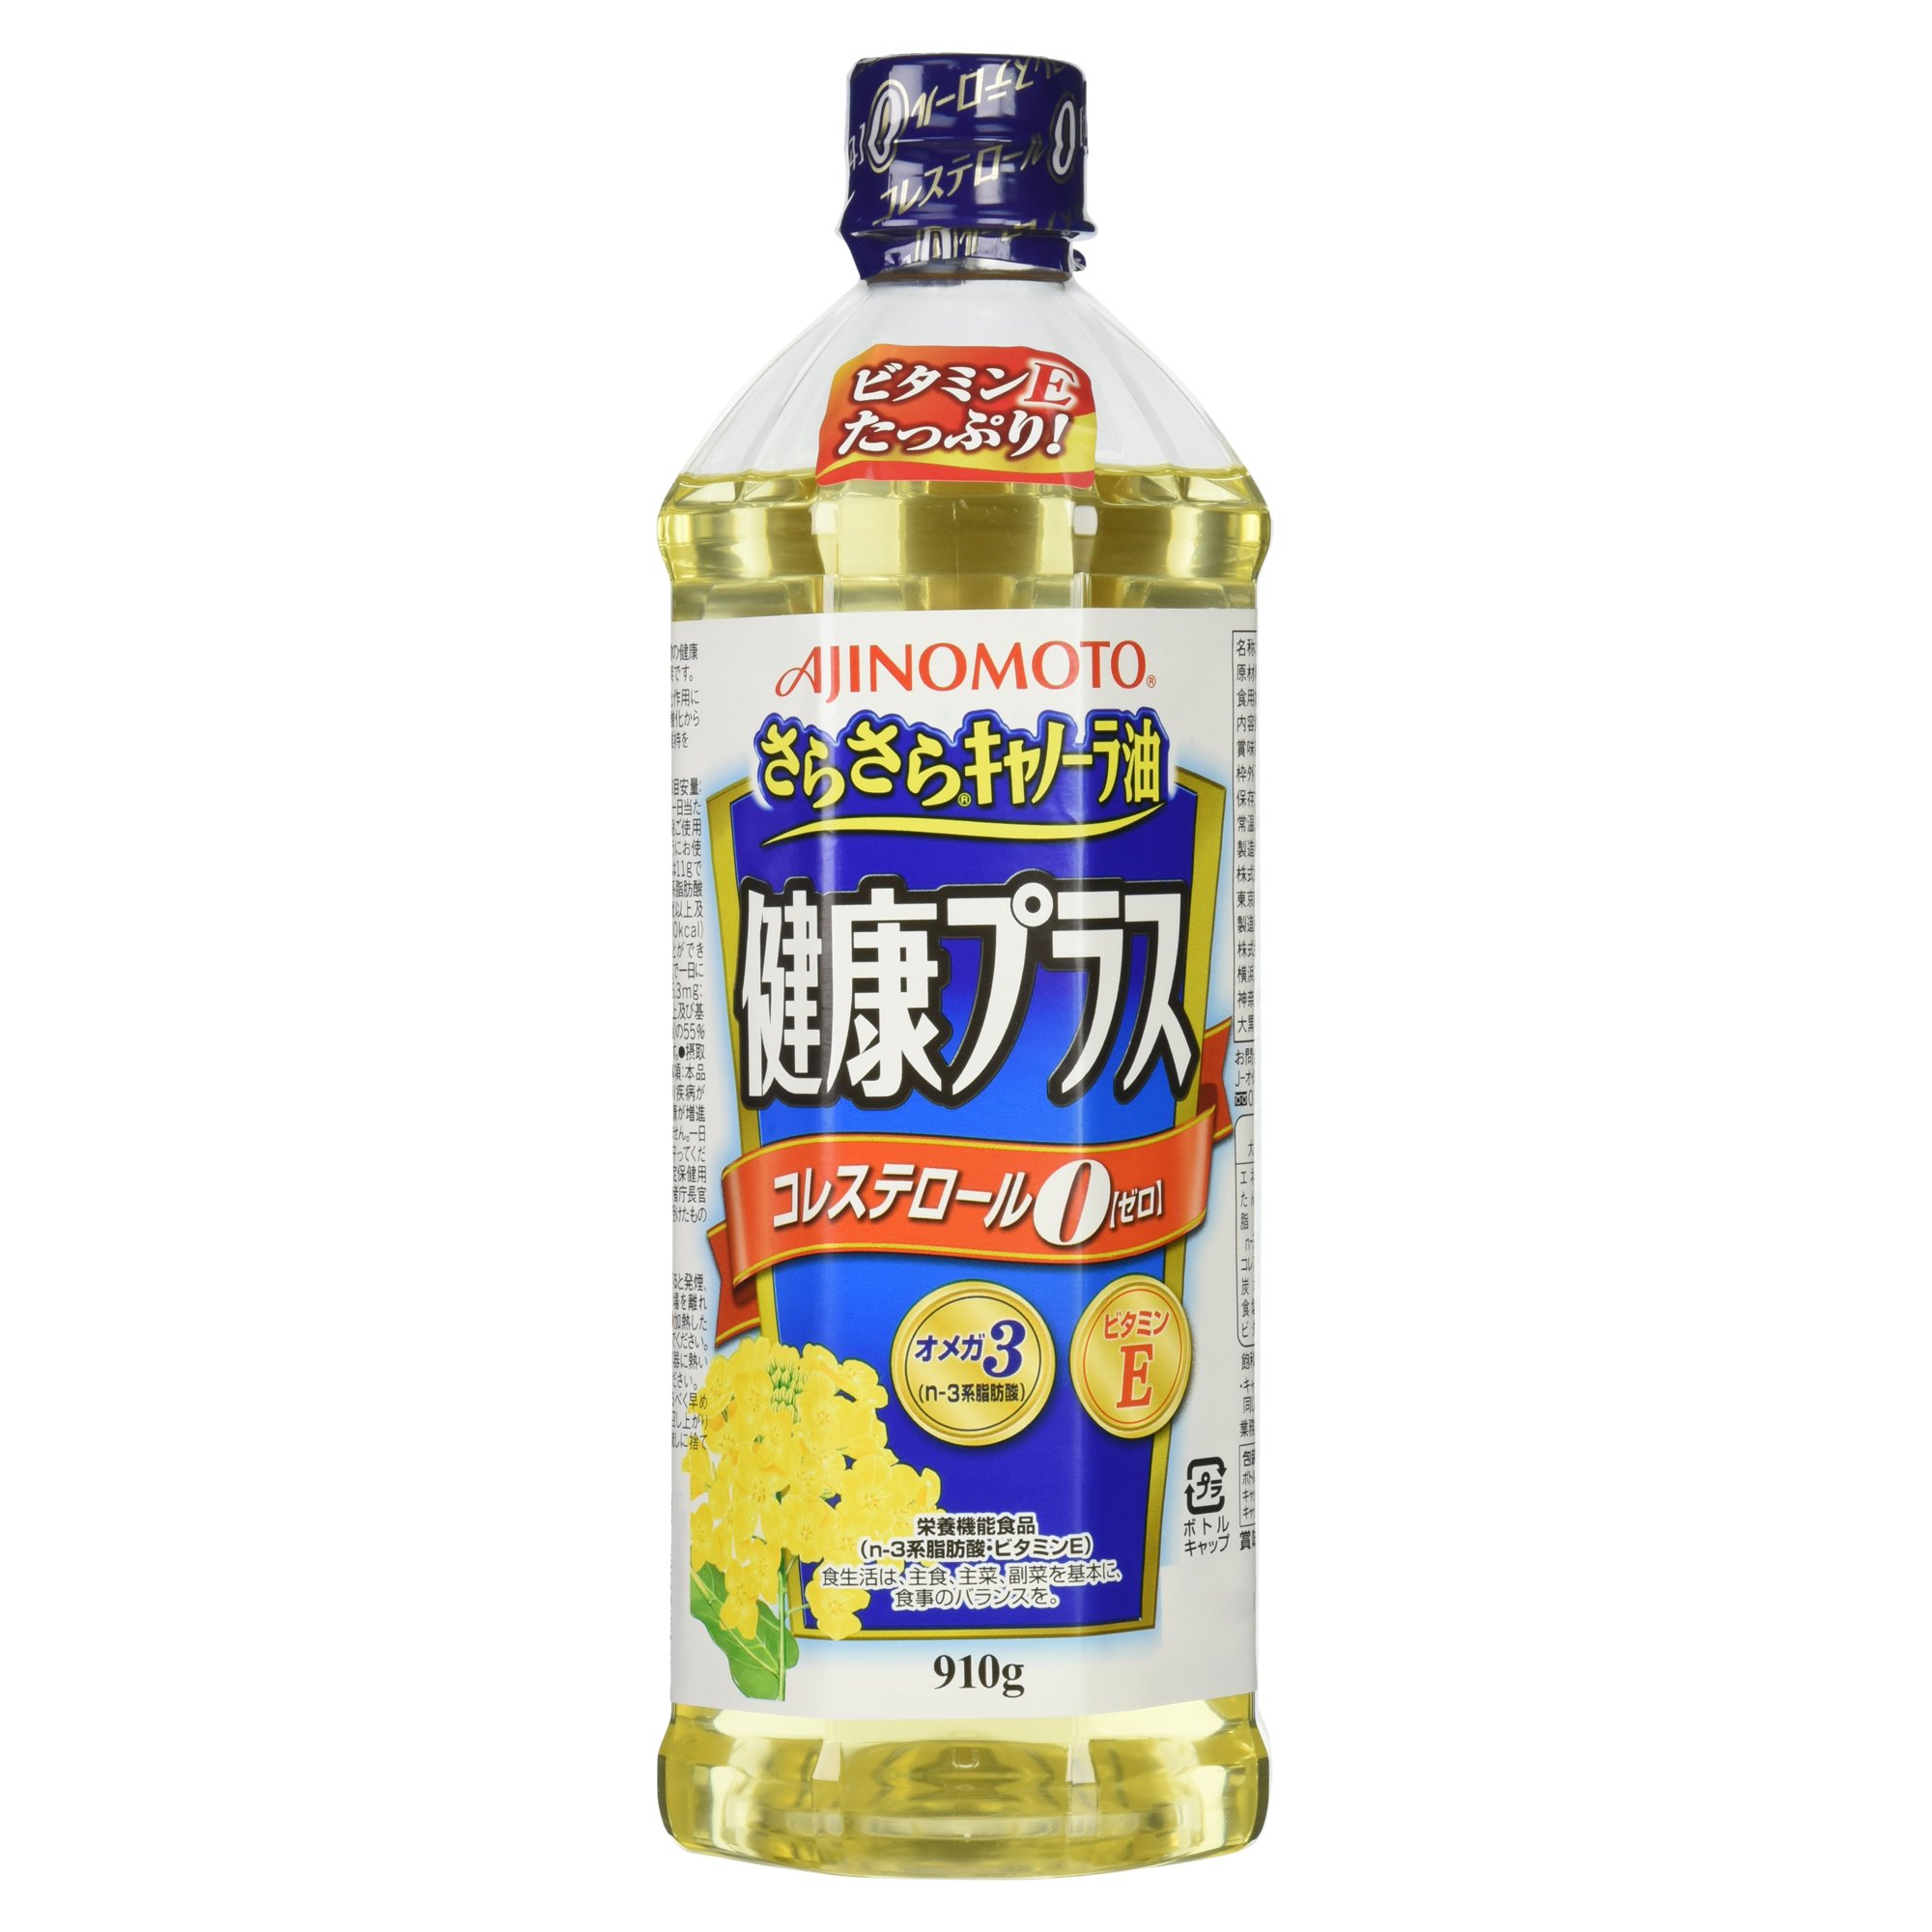 Ajinomoto smooth canola oil healthy plus 910g [Parallel import] by Ajinomoto